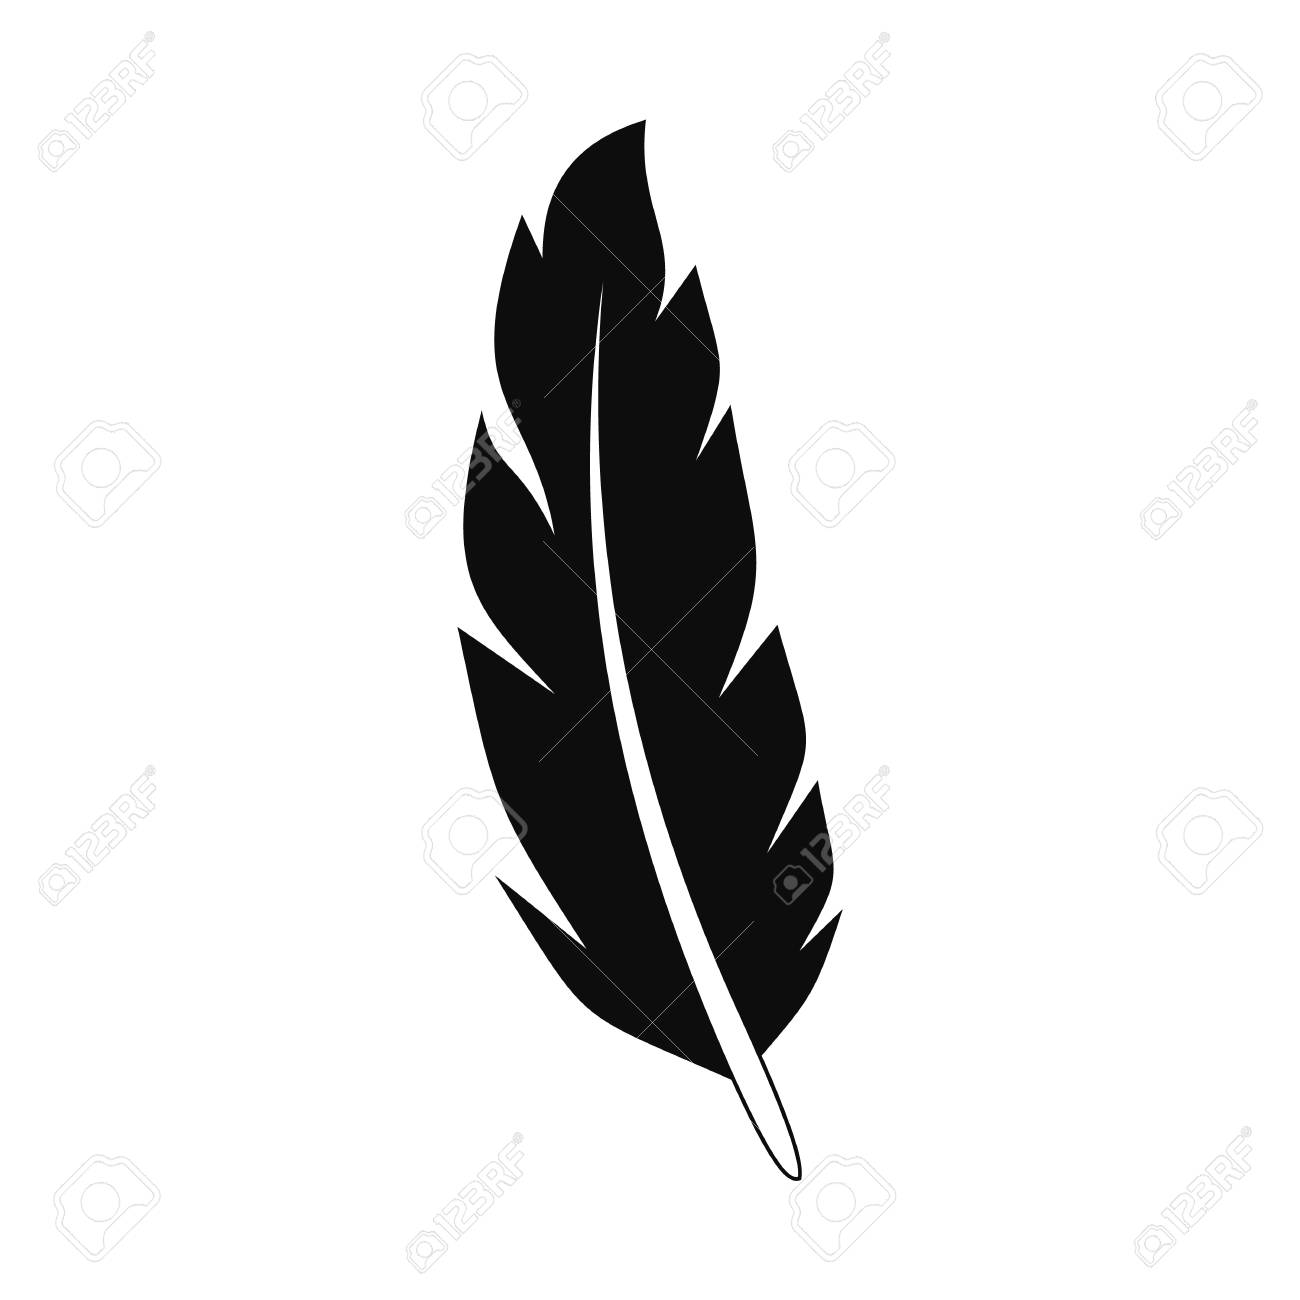 peacock feather icon simple